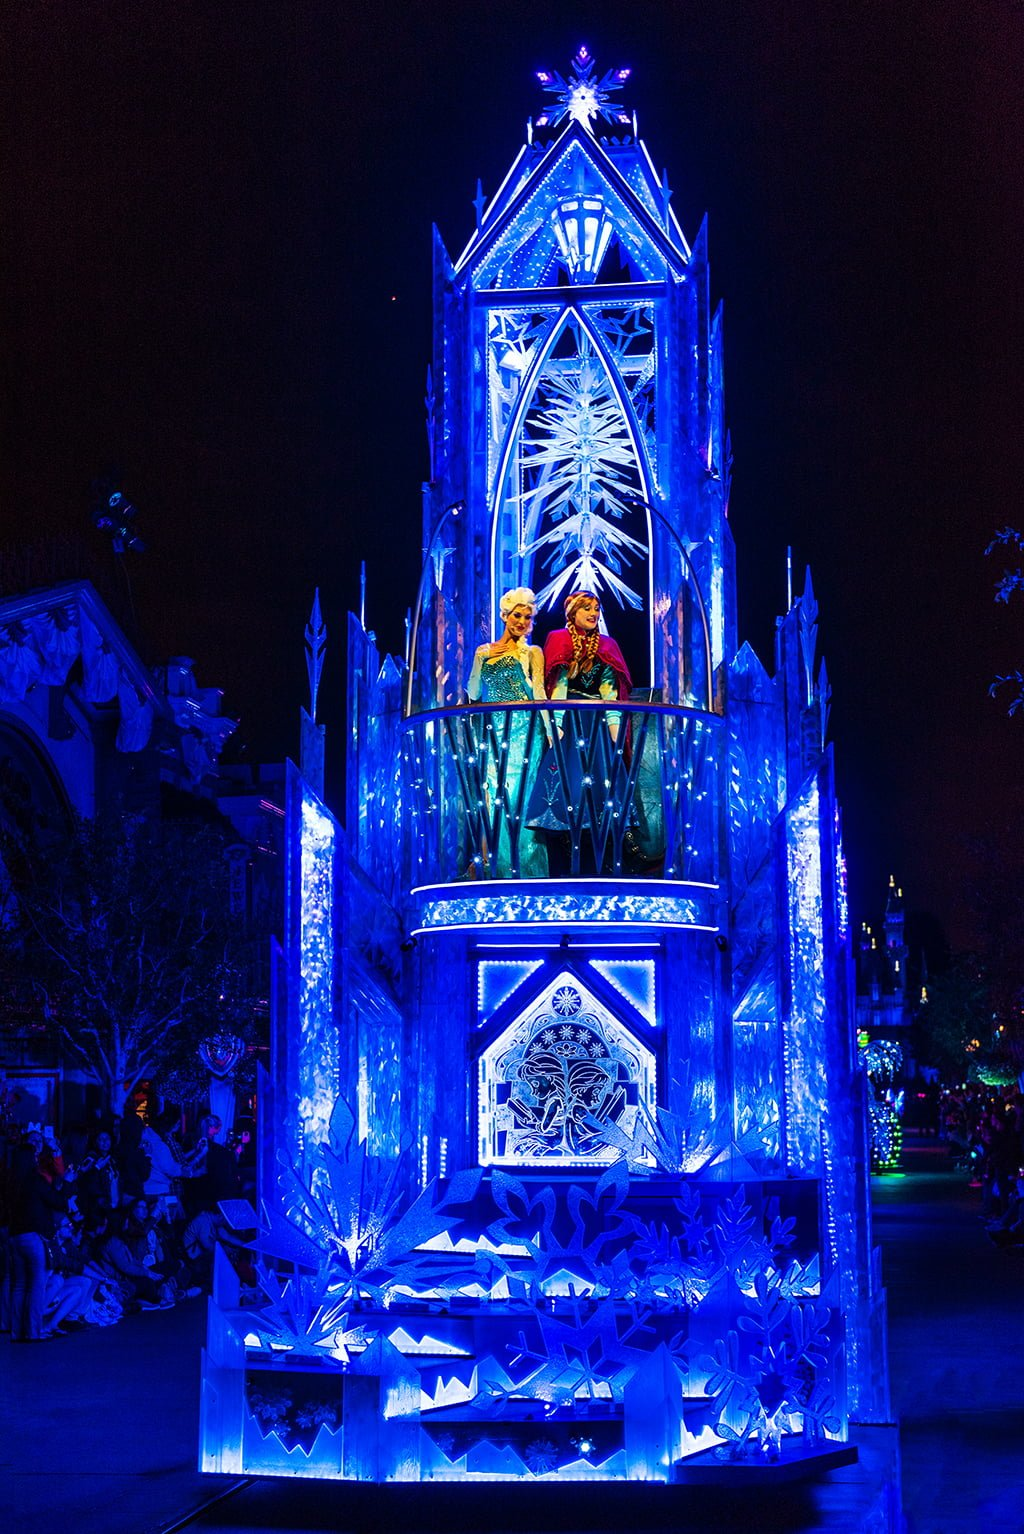 Disney Paint the Night Parade - Disney Tourist Blog